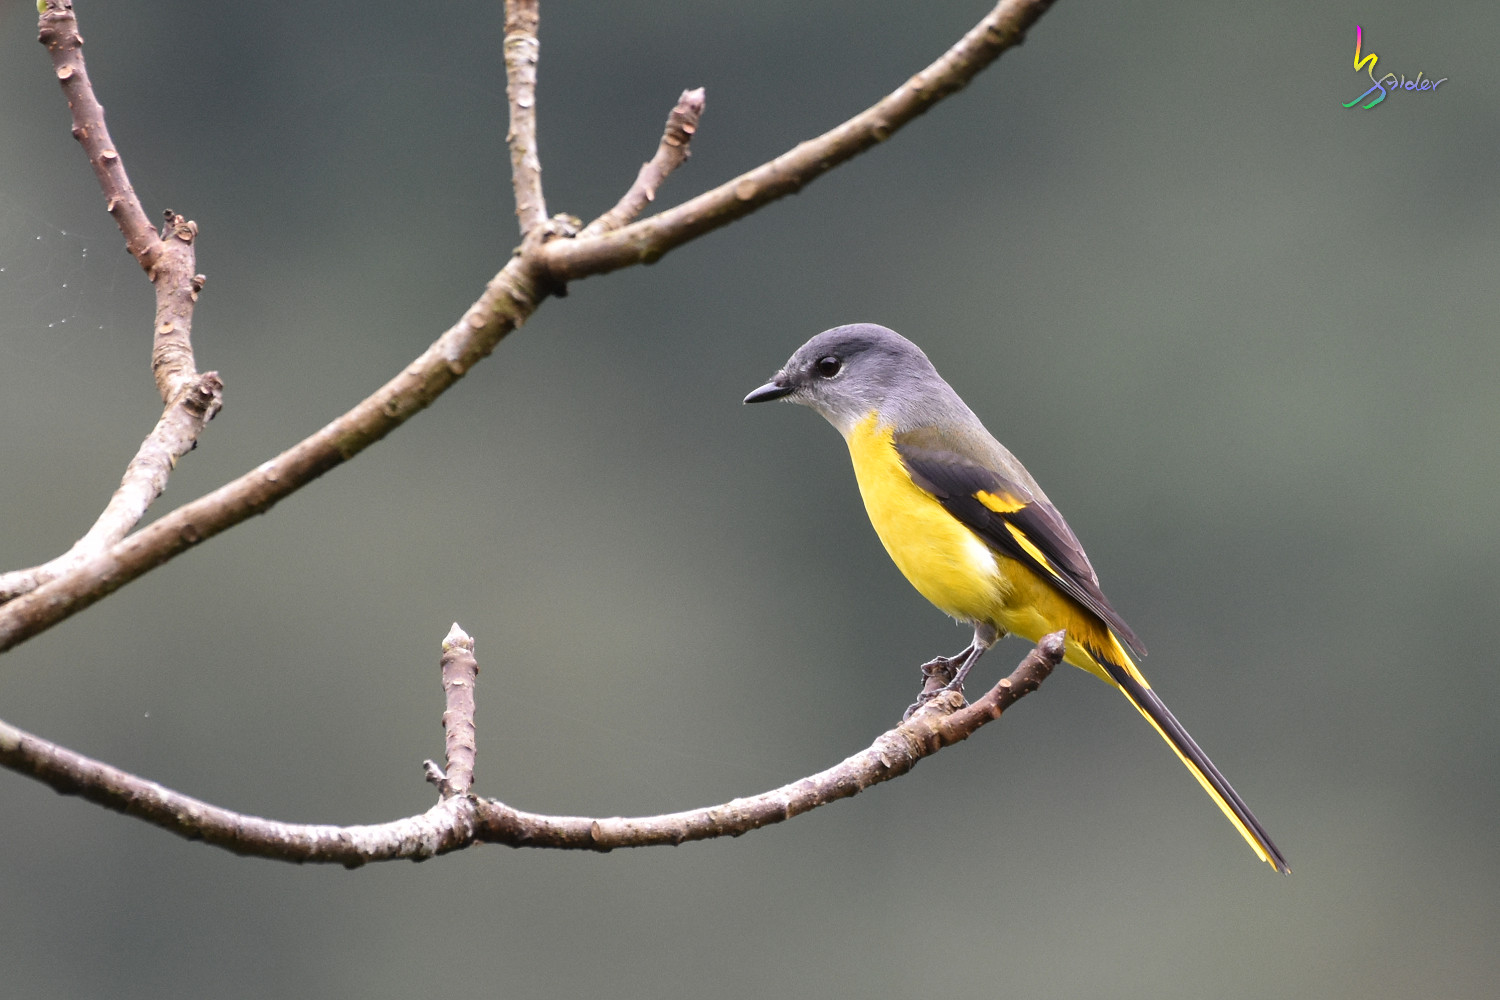 Gray-chinned_Minivet_6899